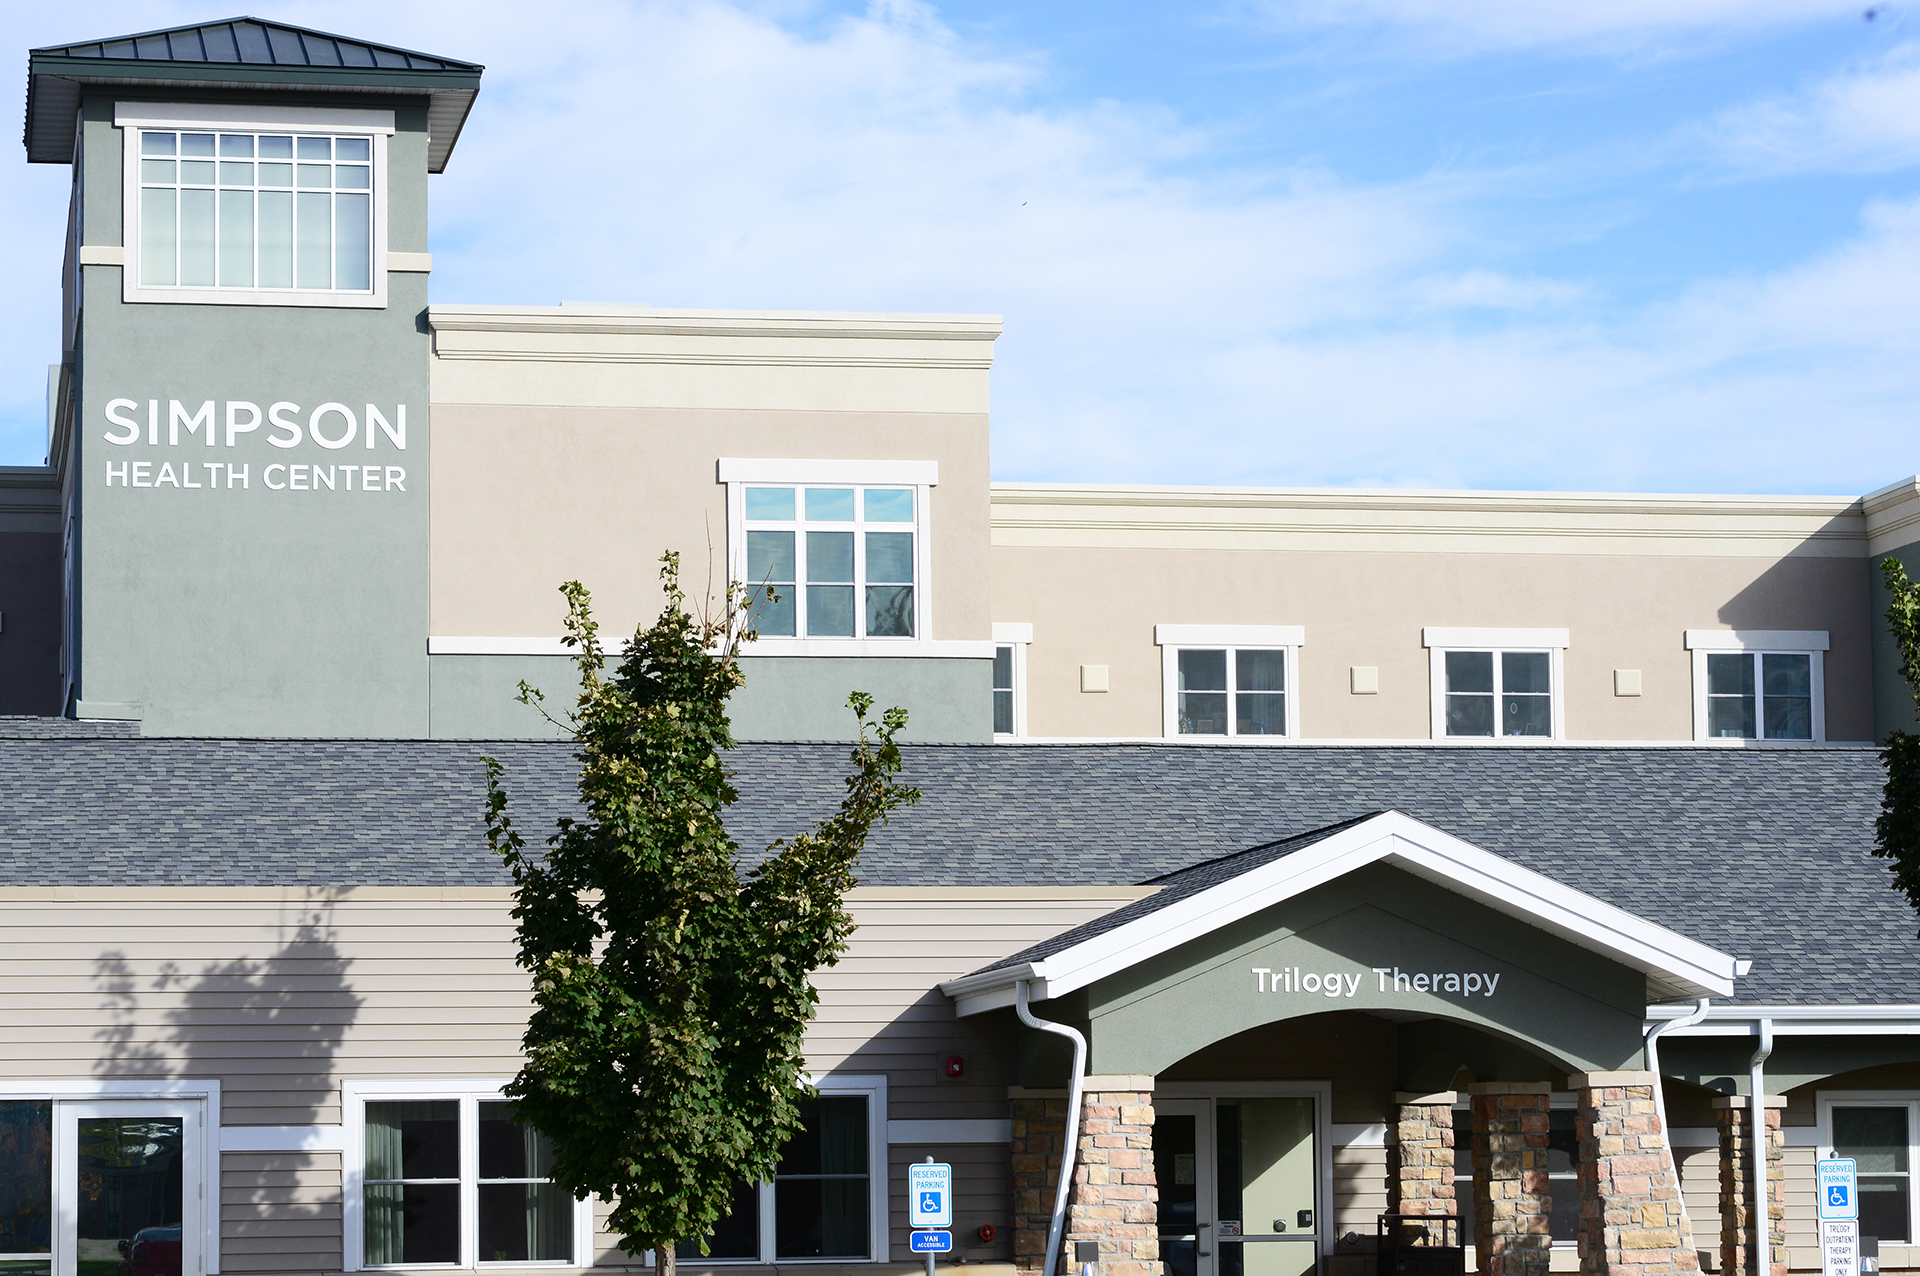 Simpson Health Center